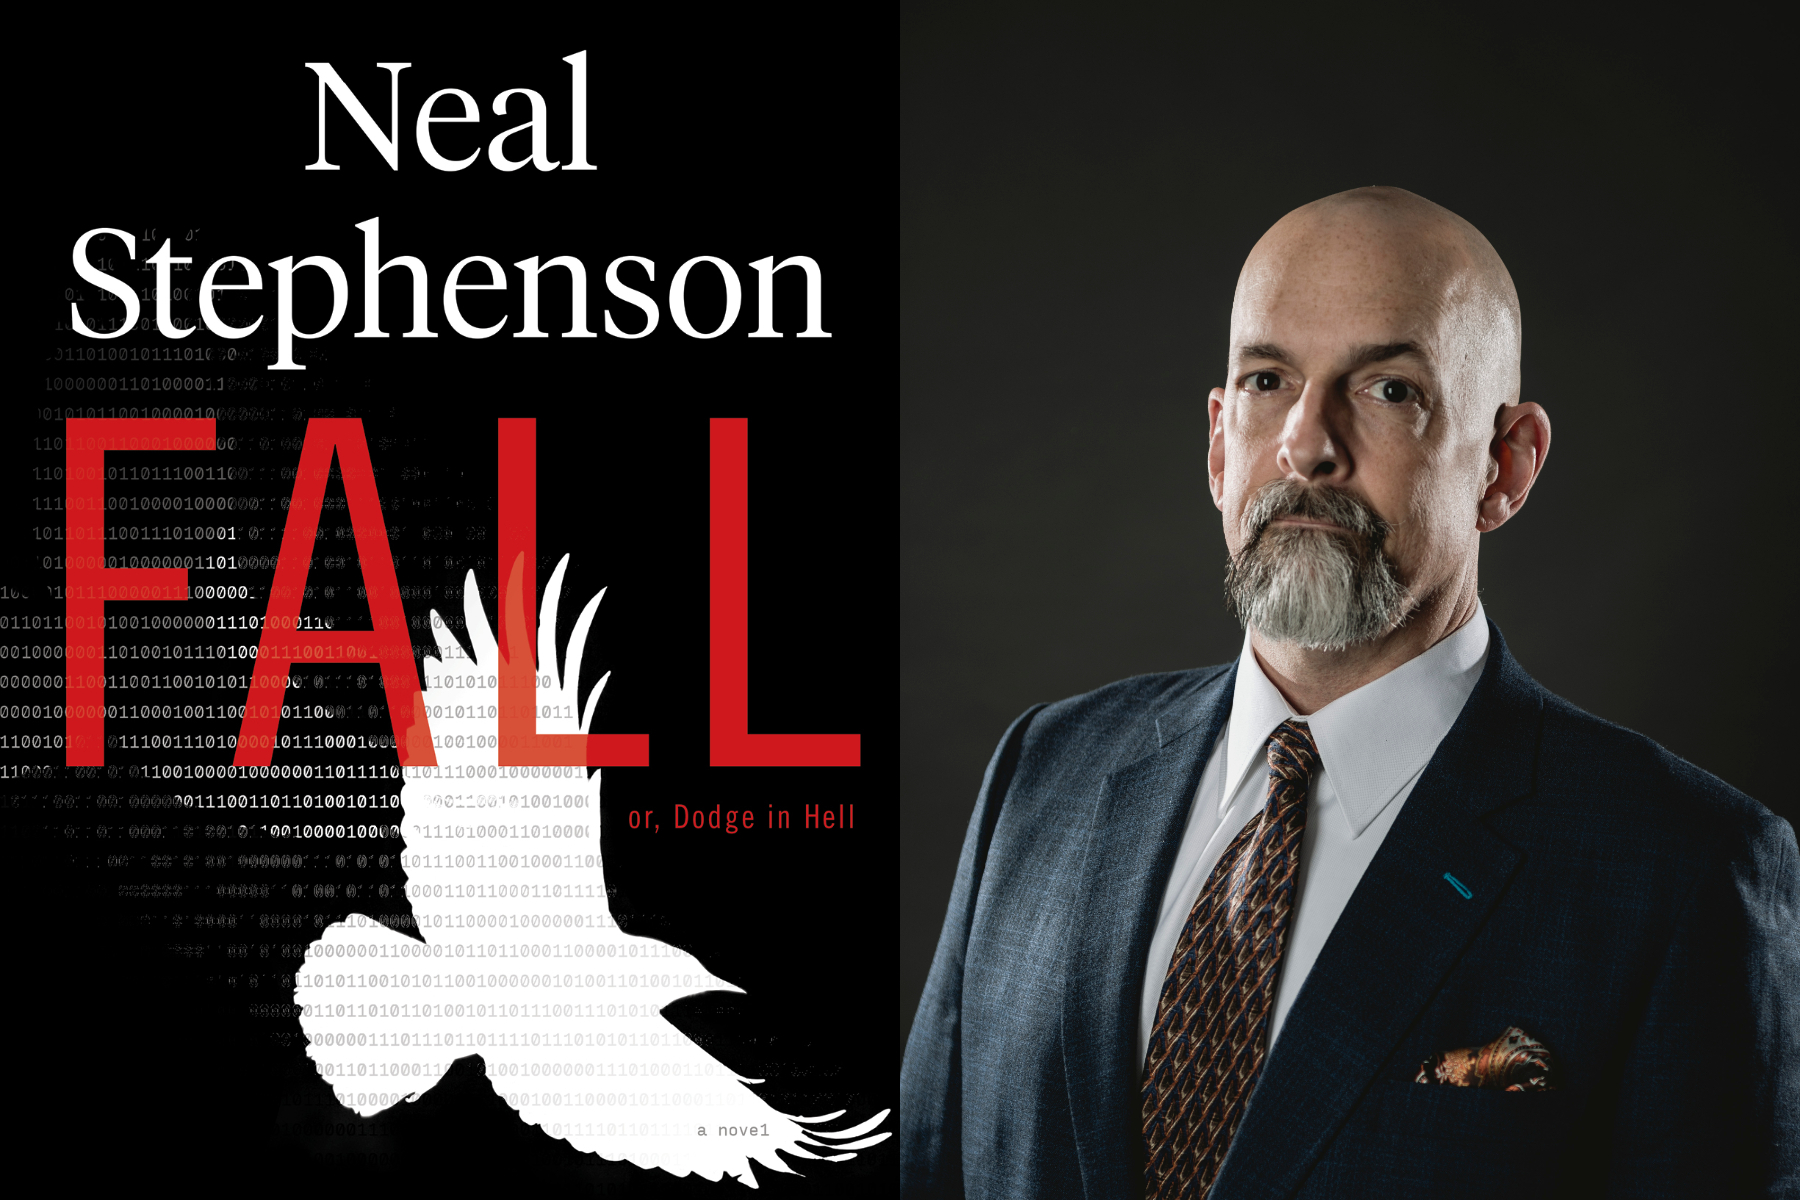 In Fall, Neal Stephenson does Paradise Lost with computers